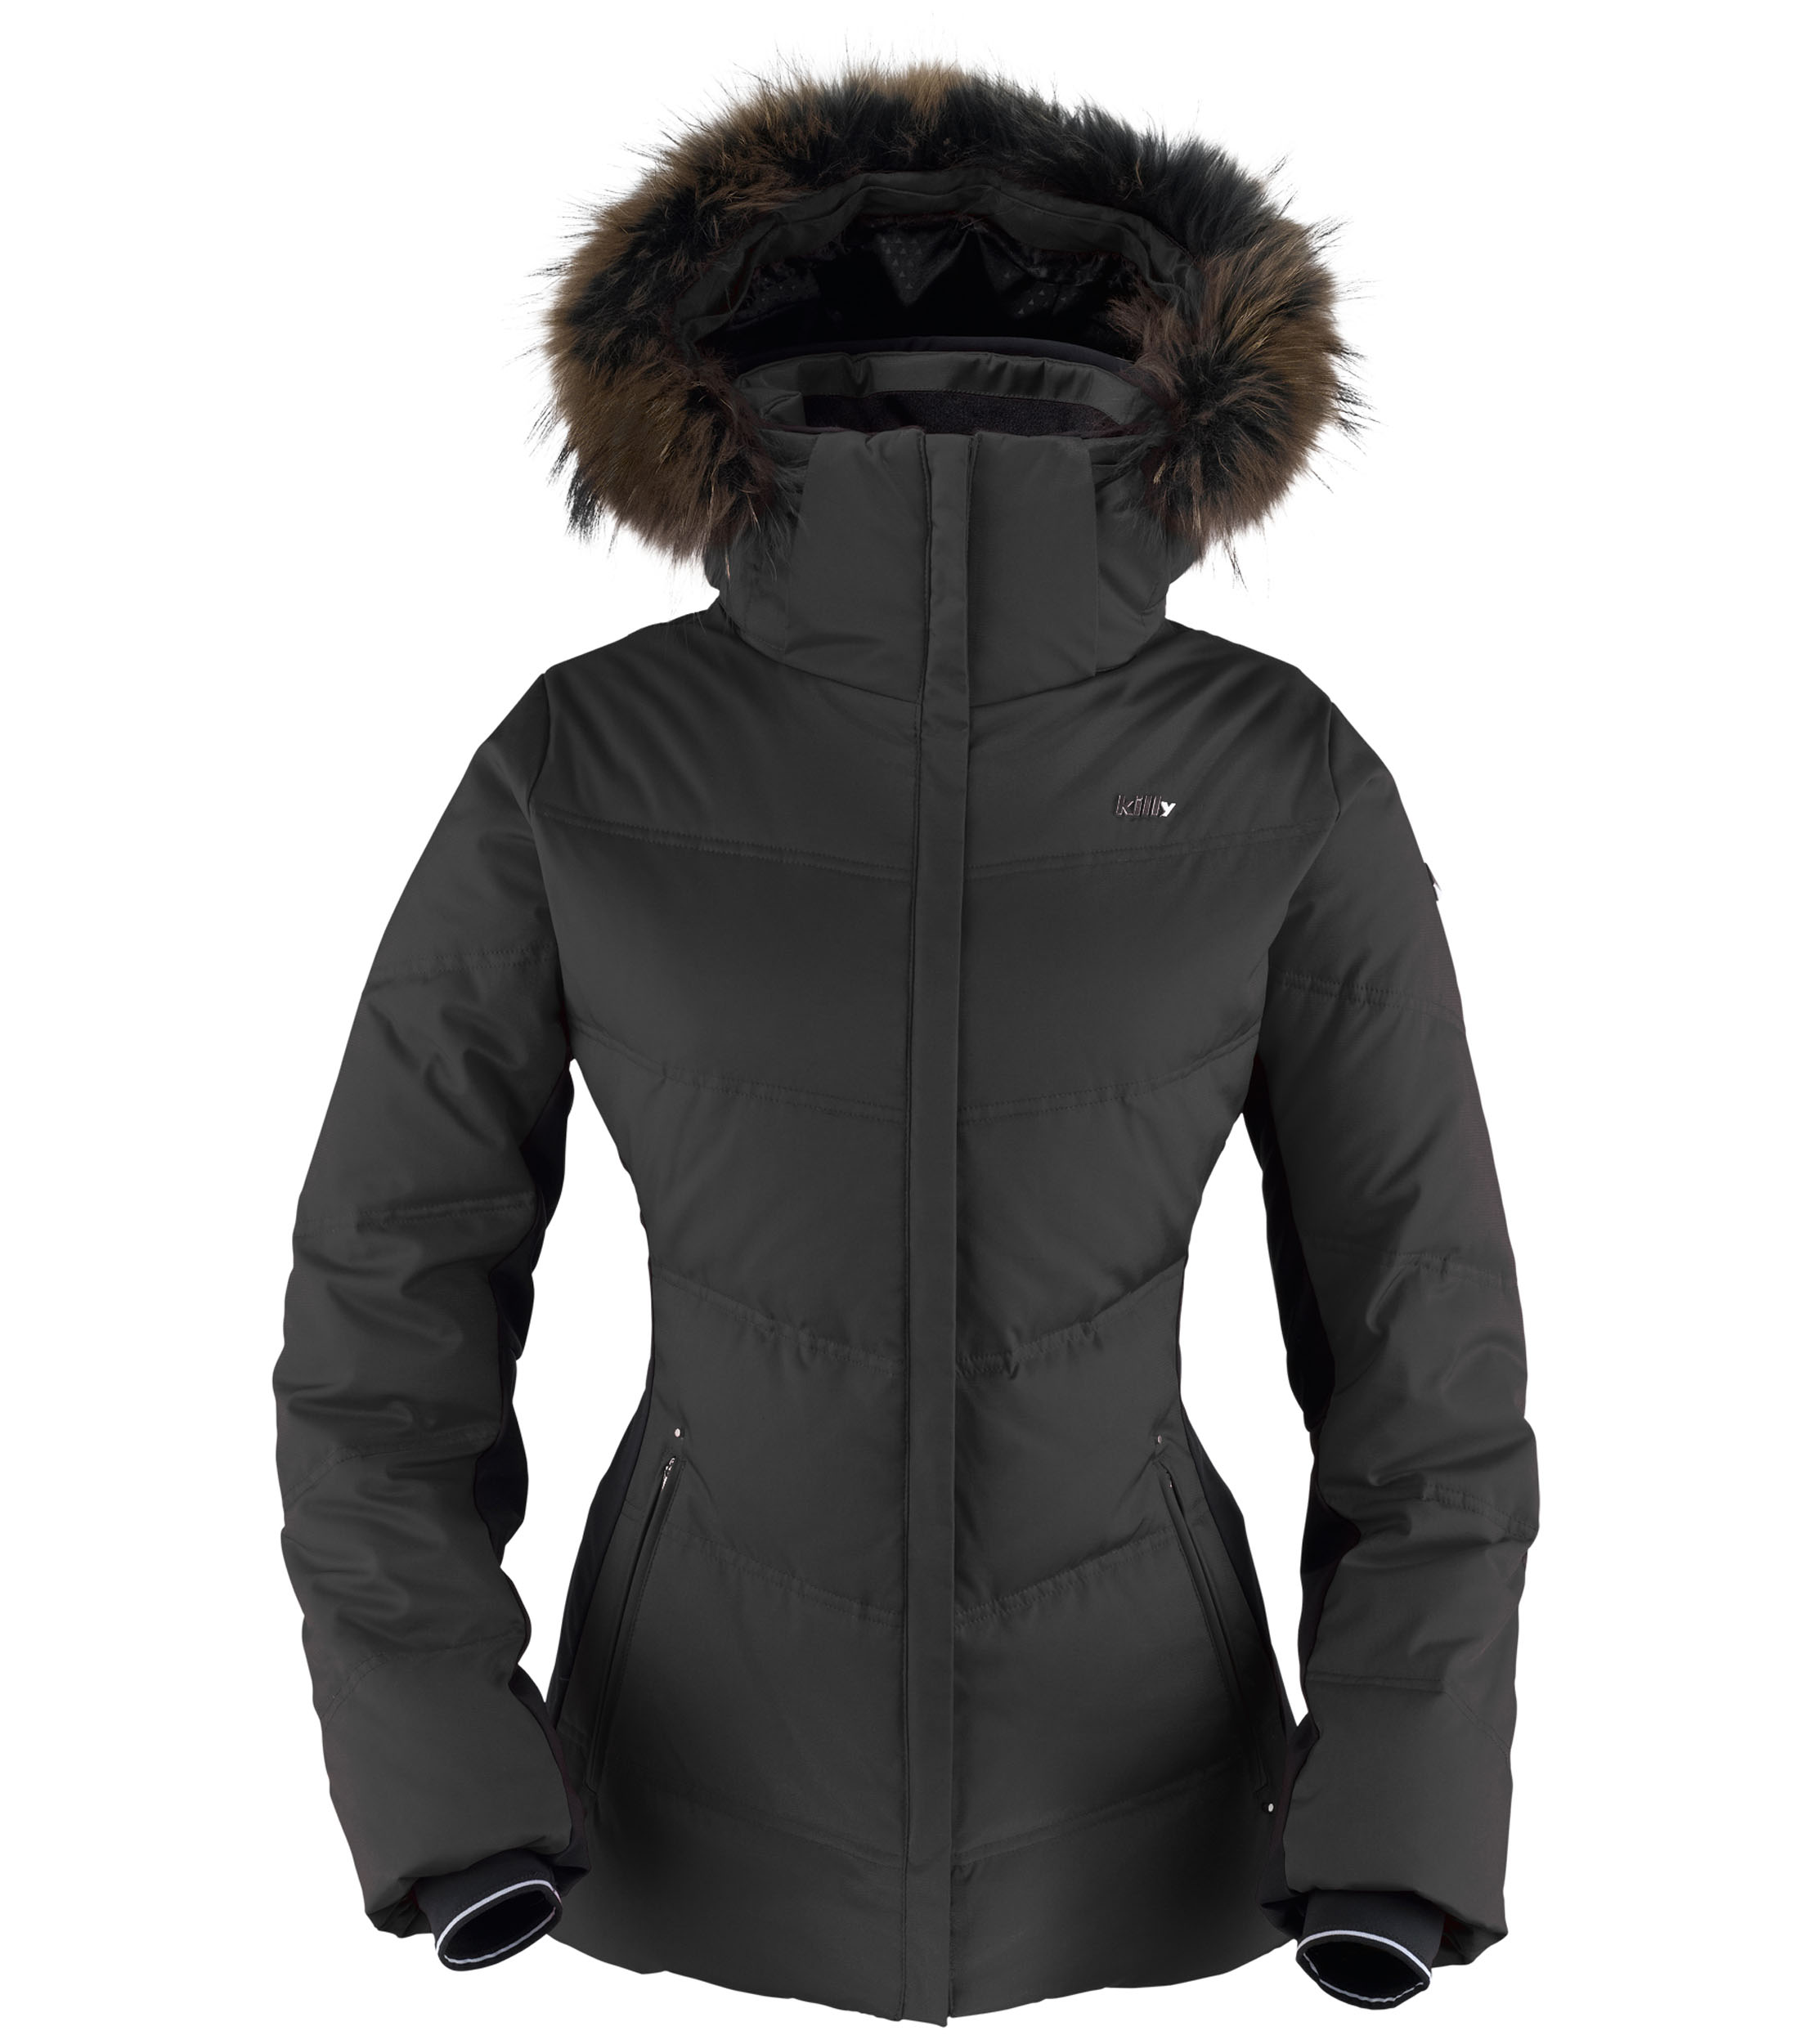 Killy ski jackets sale uk